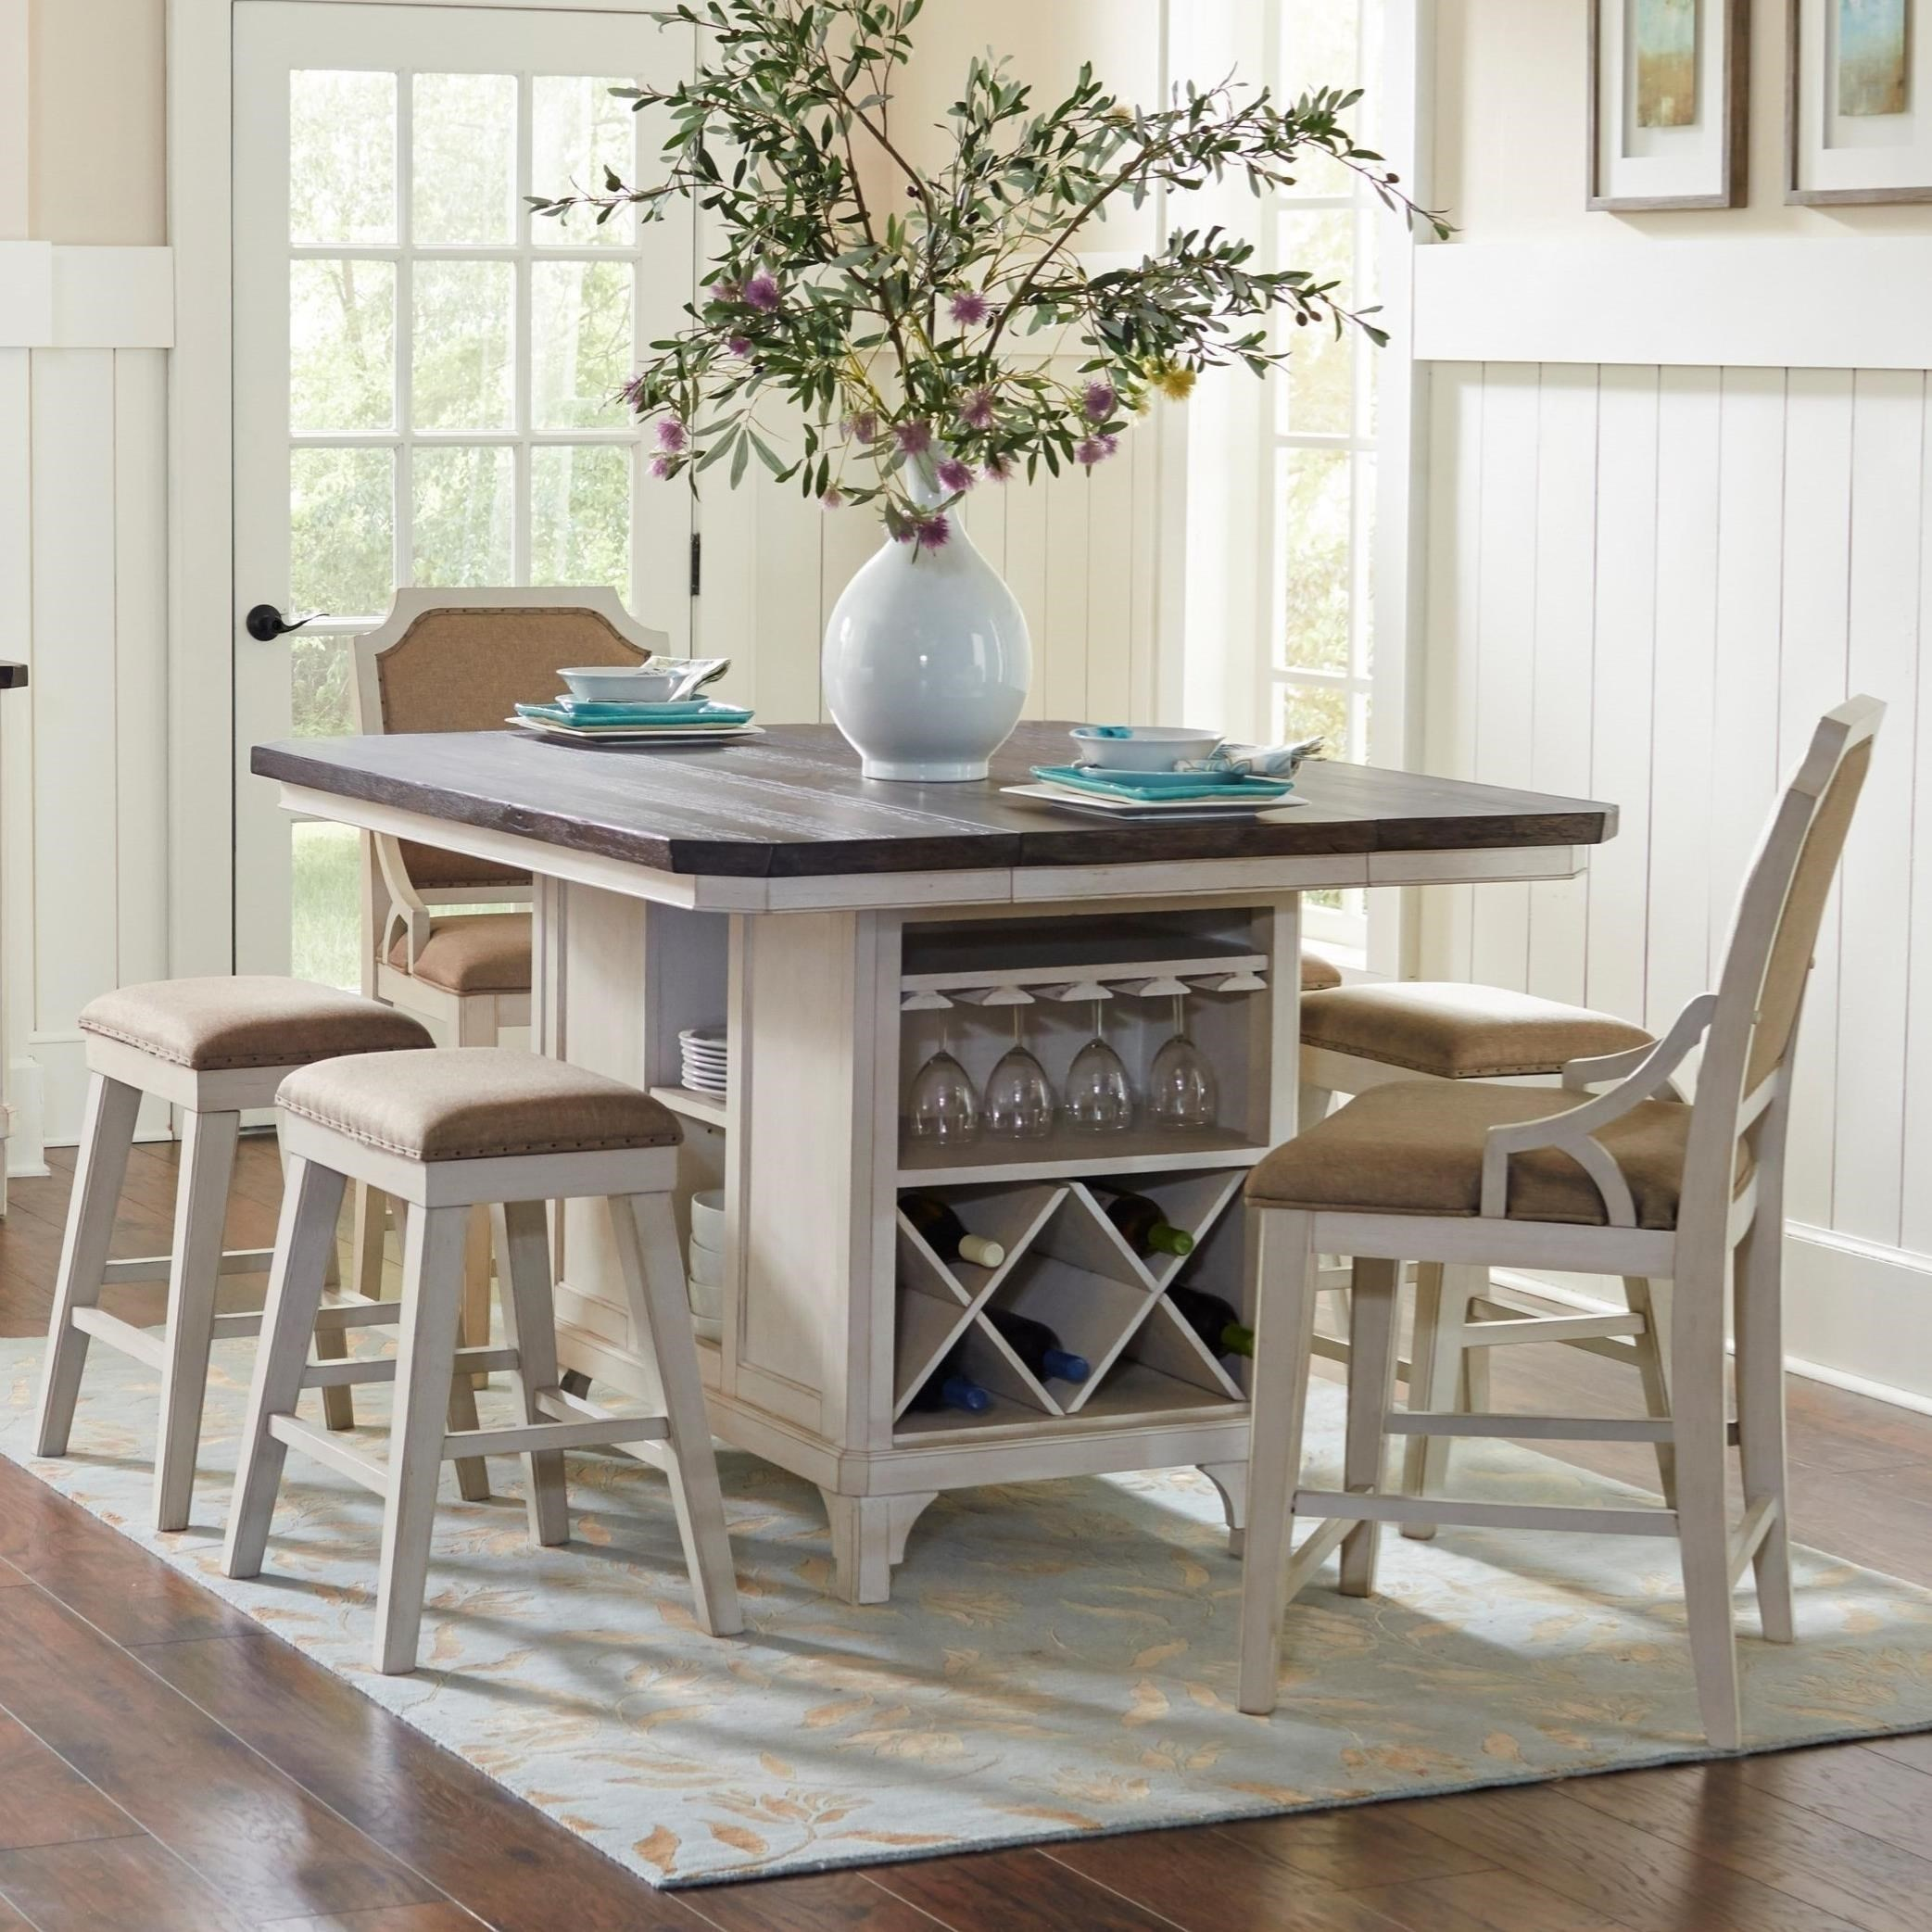 avalon furniture mystic cay 7 piece kitchen island table set   prime brothers furniture   pub table and stool sets avalon furniture mystic cay 7 piece kitchen island table set      rh   primebrothers com